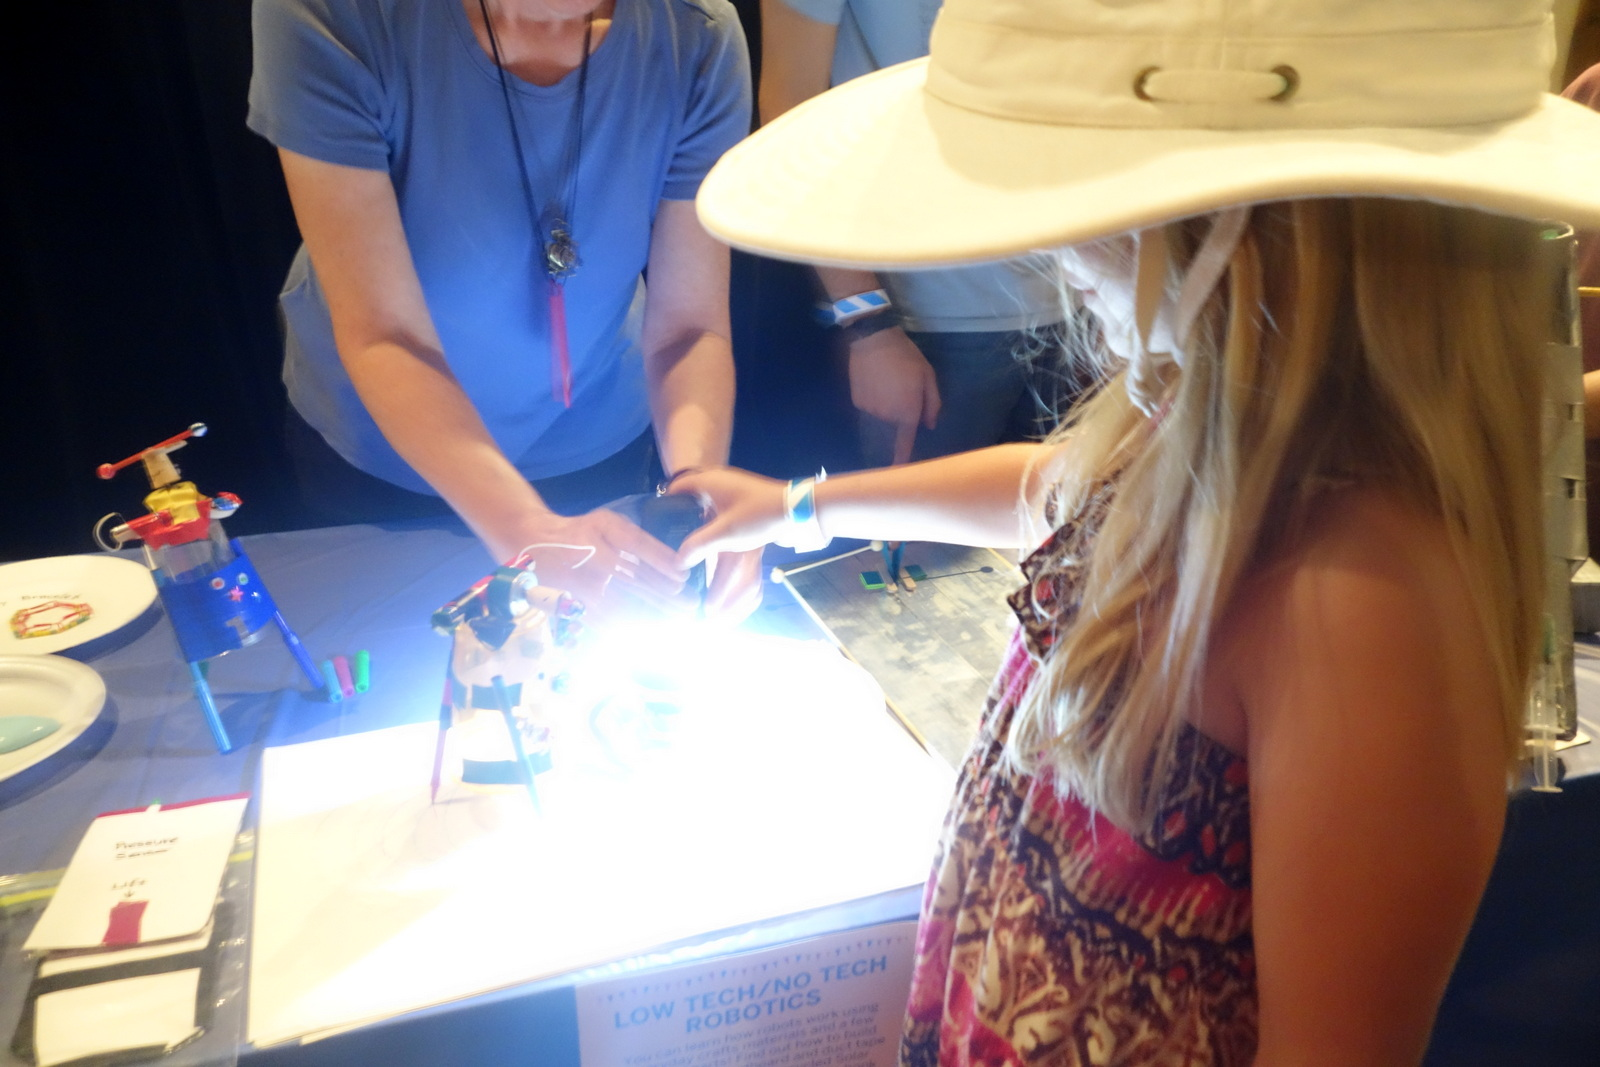 """Kathy Ceceri demonstrates a """"Low Tech/No Tech"""" solarbot made from cheap materials like discarded CDs and food containers."""